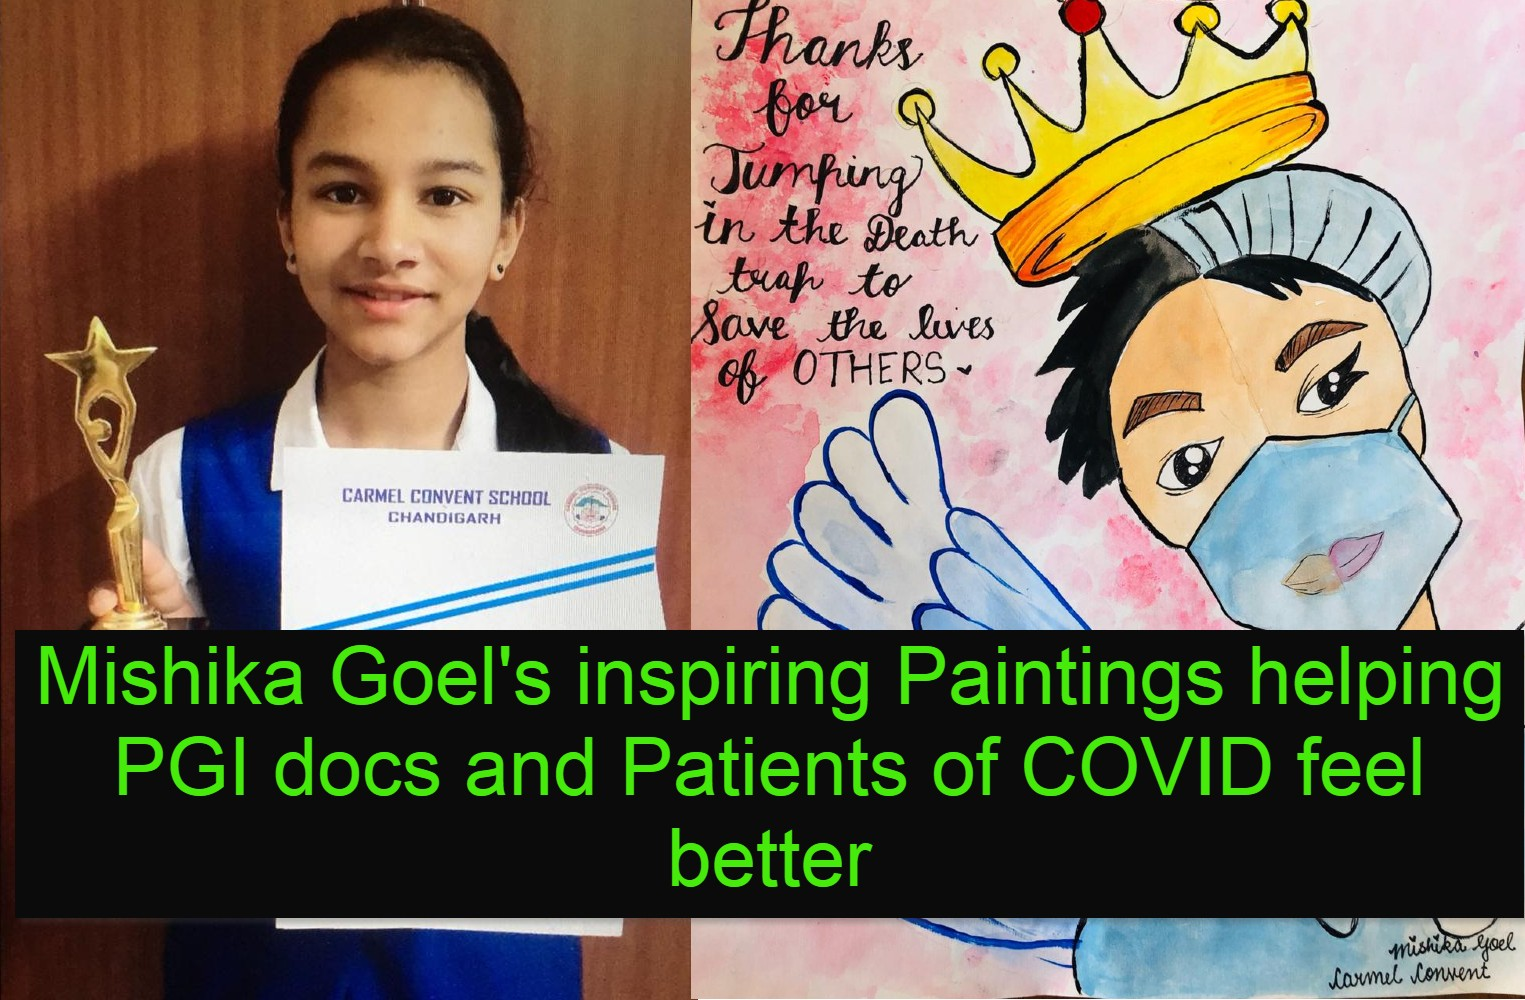 Her Paintings are providing solace to #COVID Patients in PGIMER